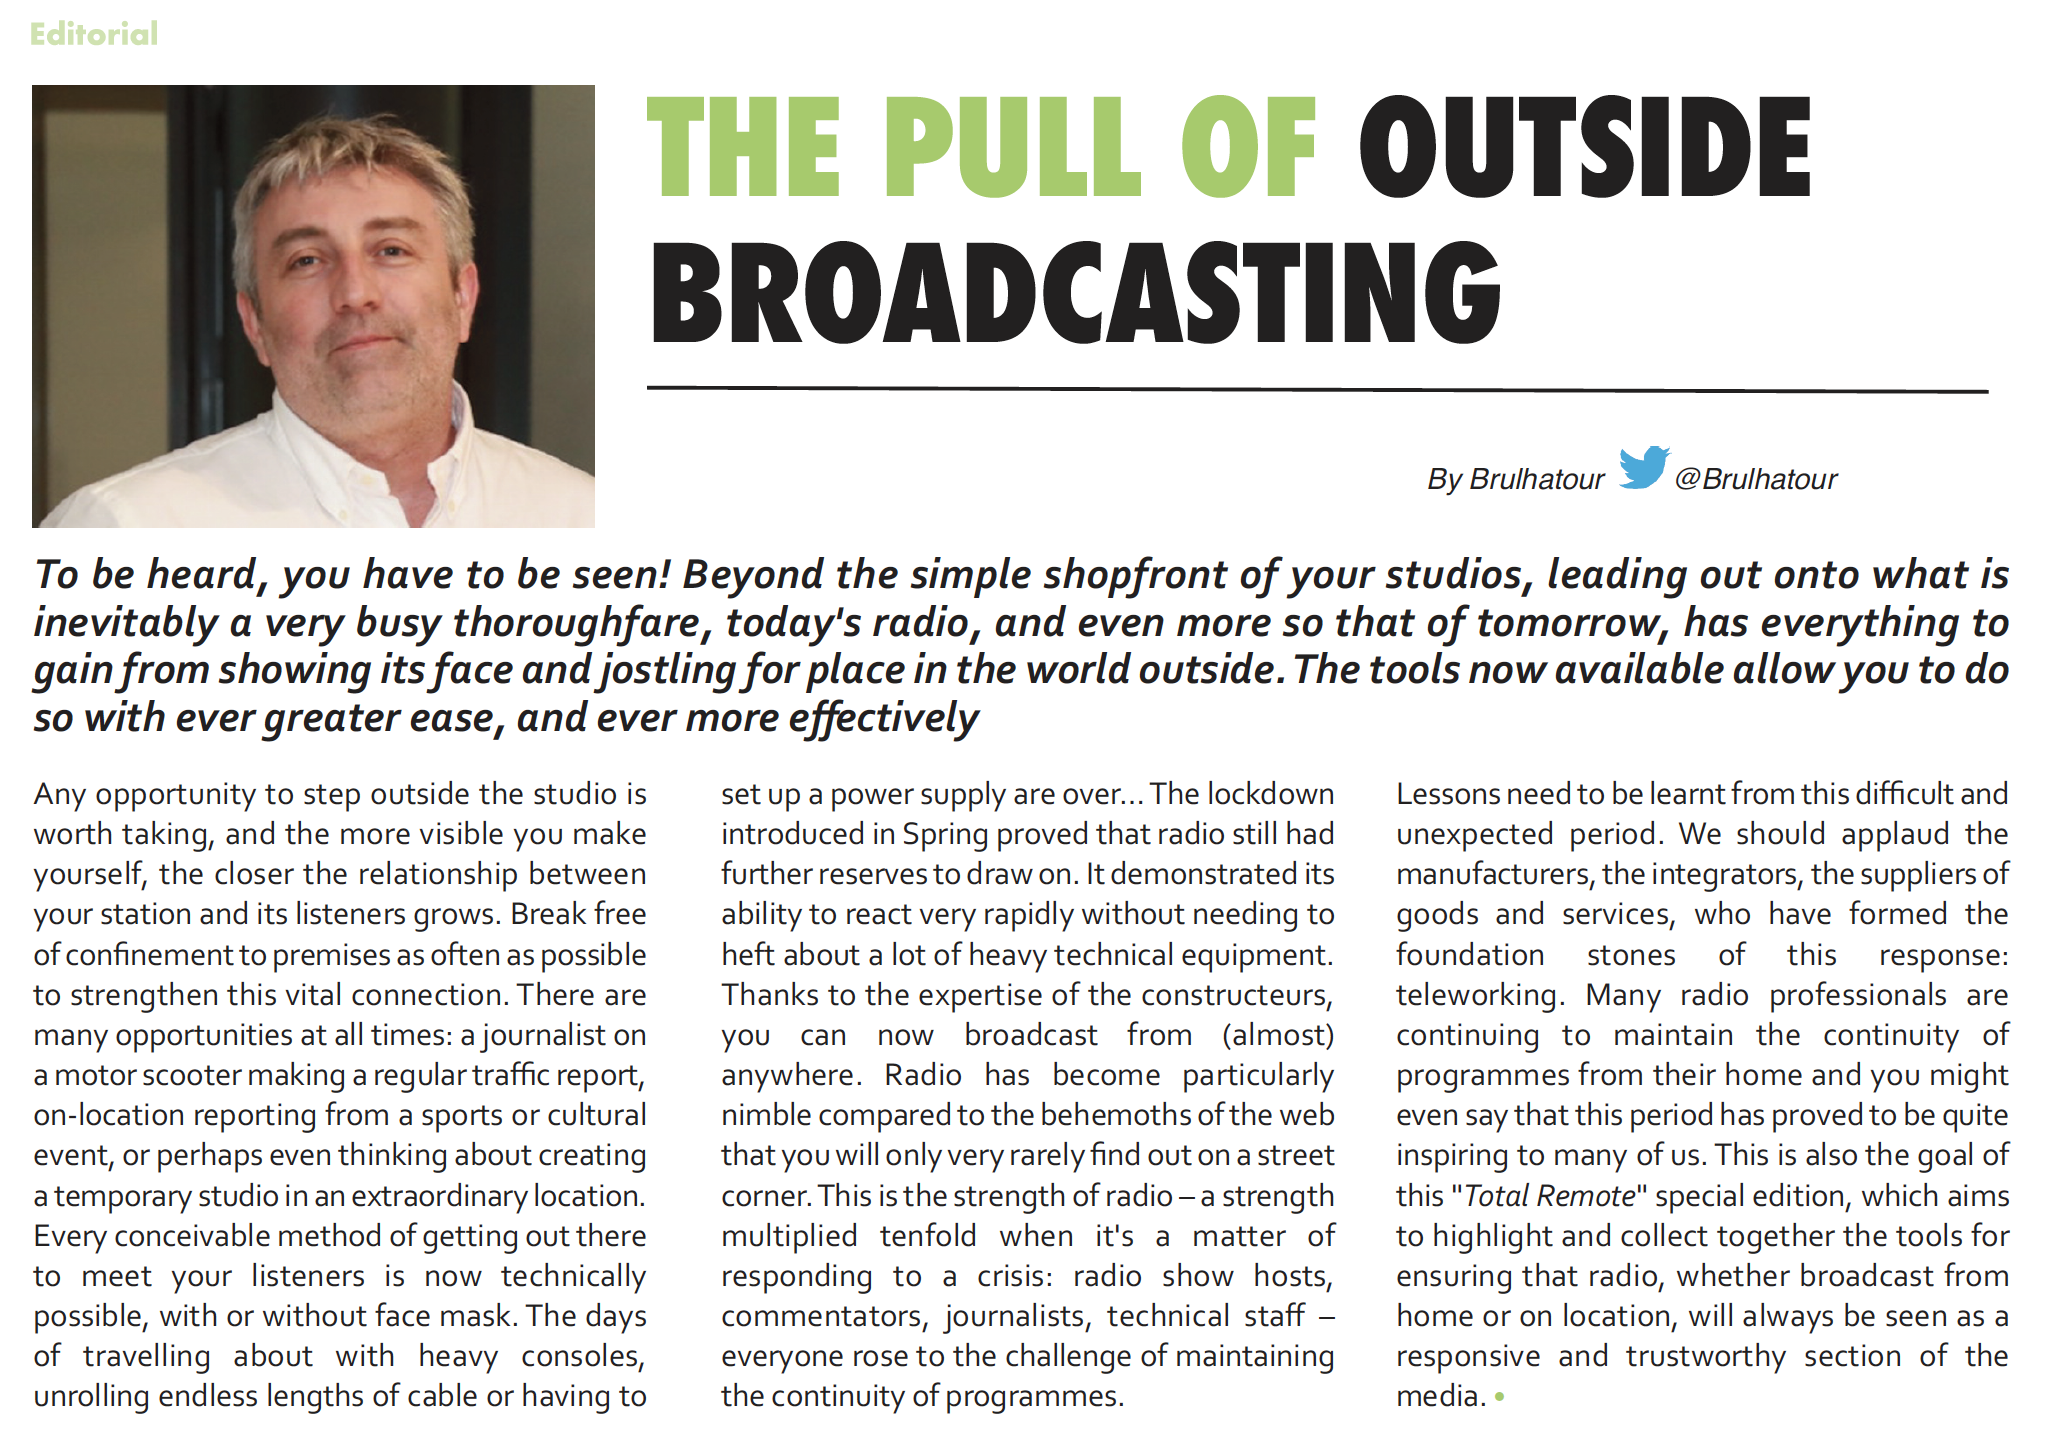 The pull of outside broadcasting